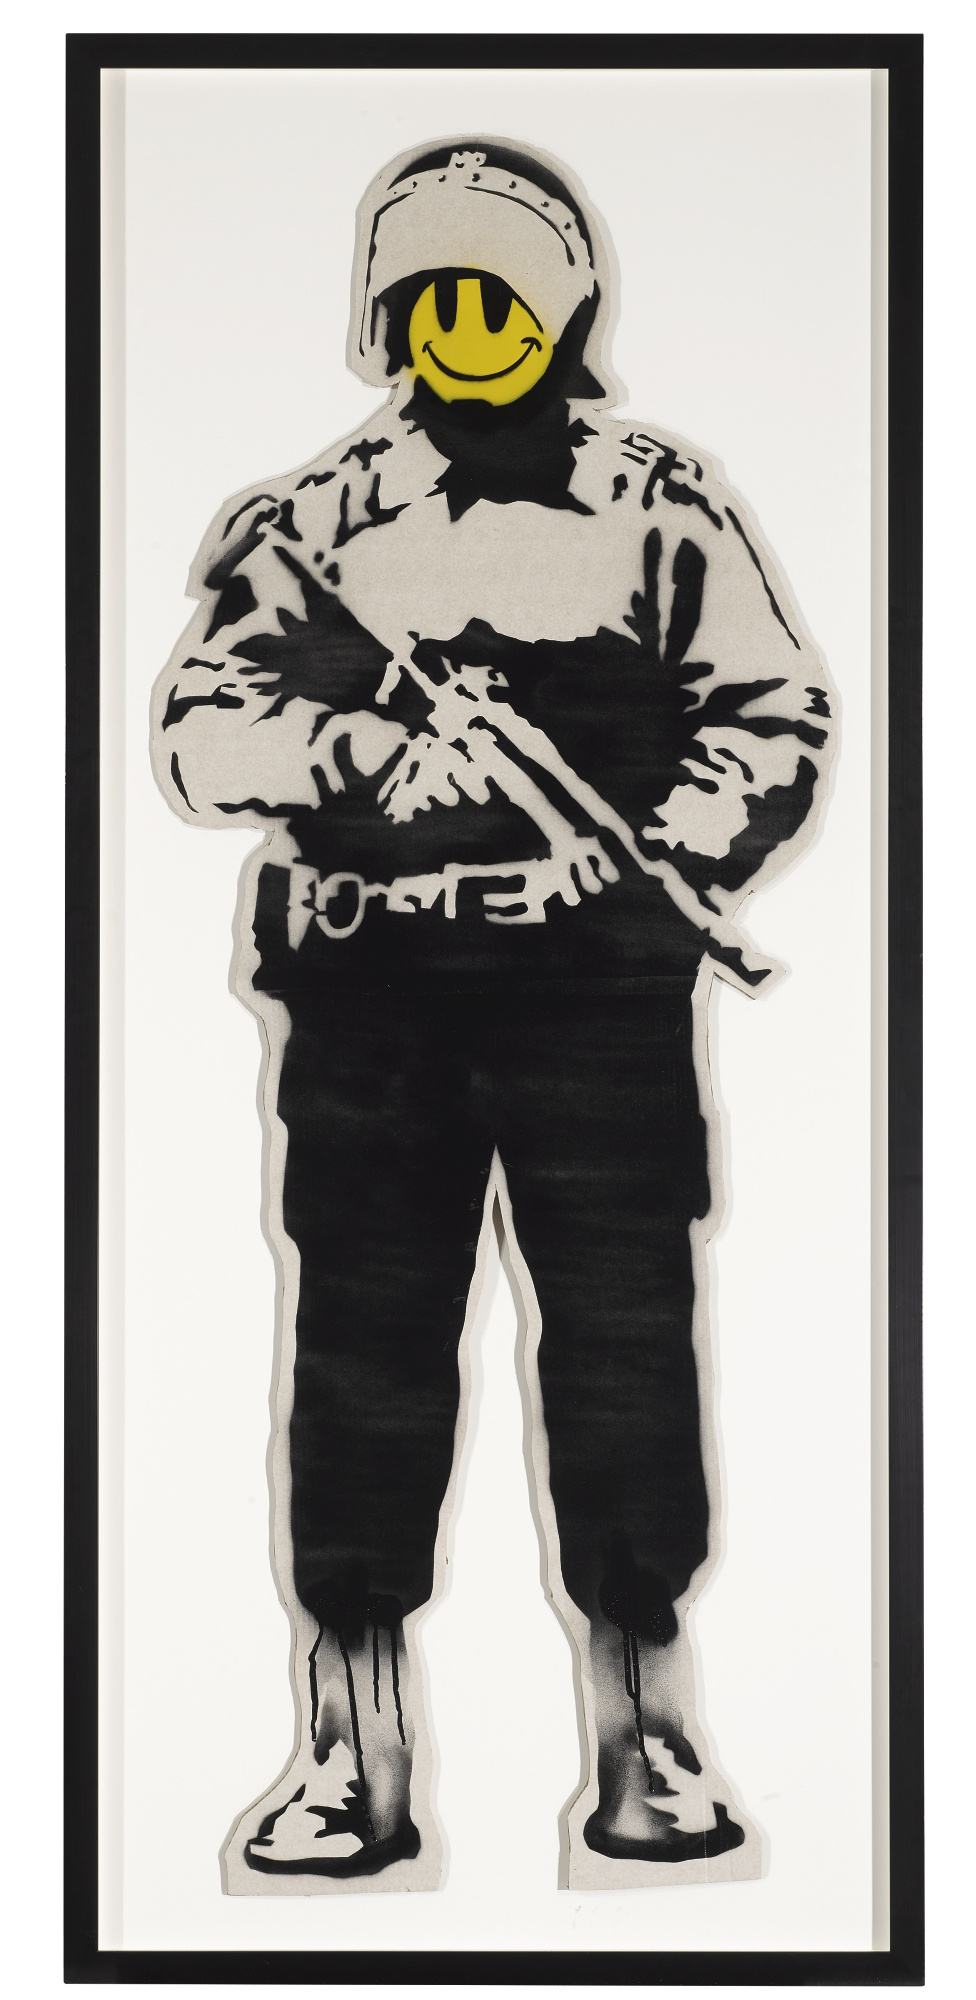 'Smiling Copper' by Banksy. Spray paint and acrylic on shaped cardboard.